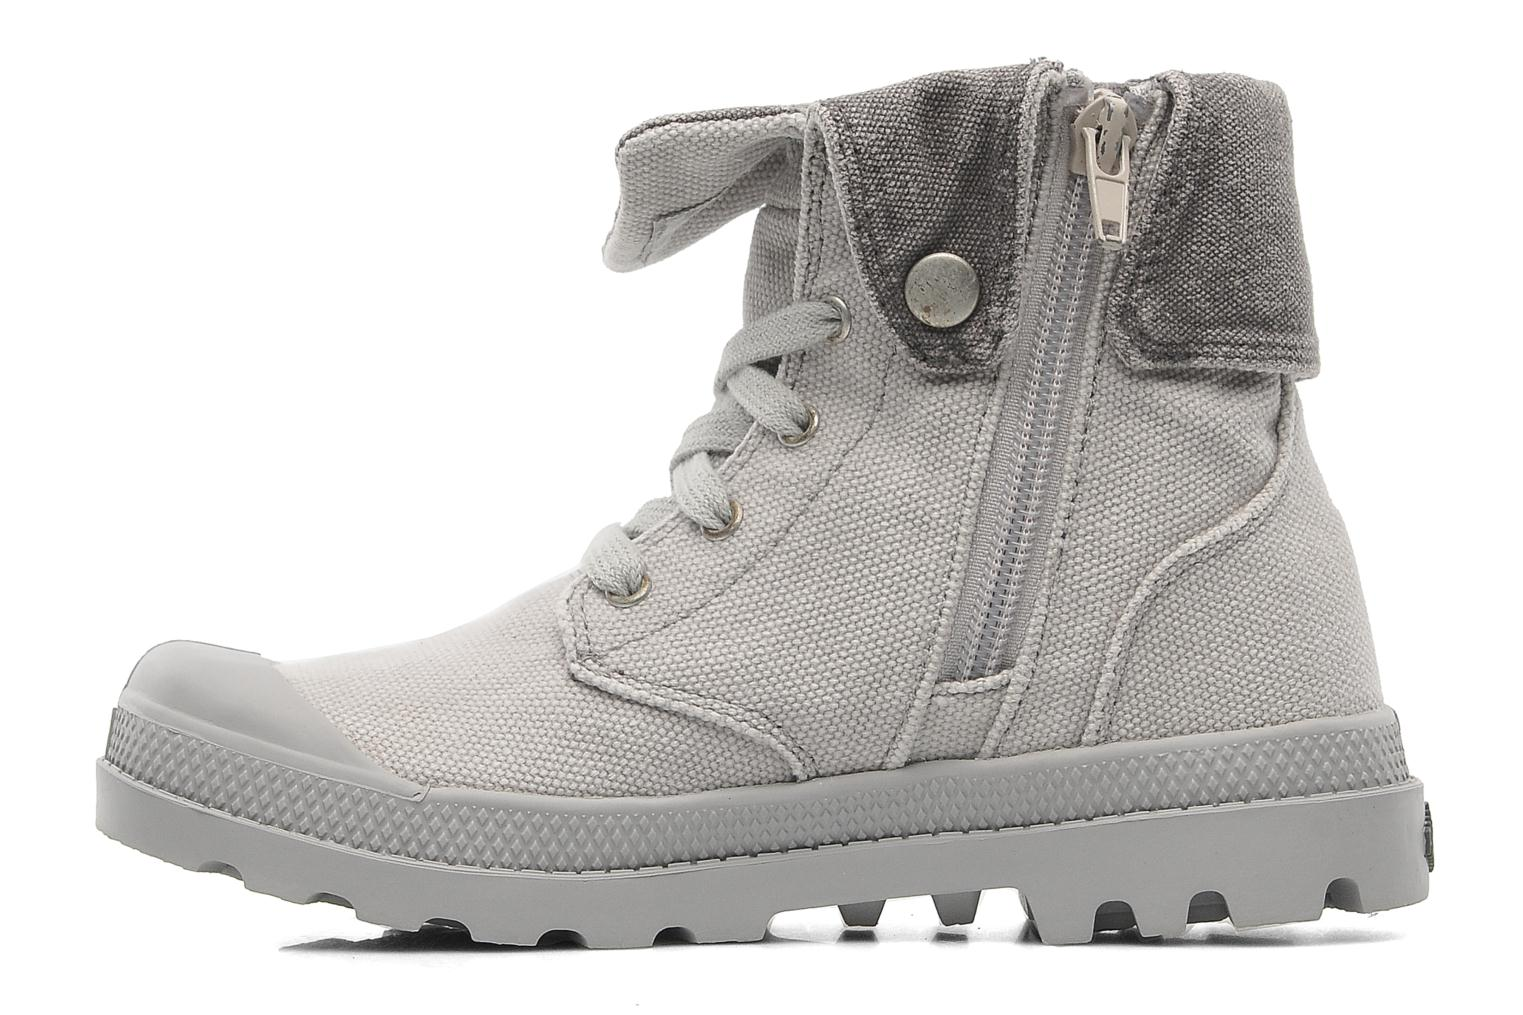 Bottines et boots Palladium Baggy Zipper K Gris vue face